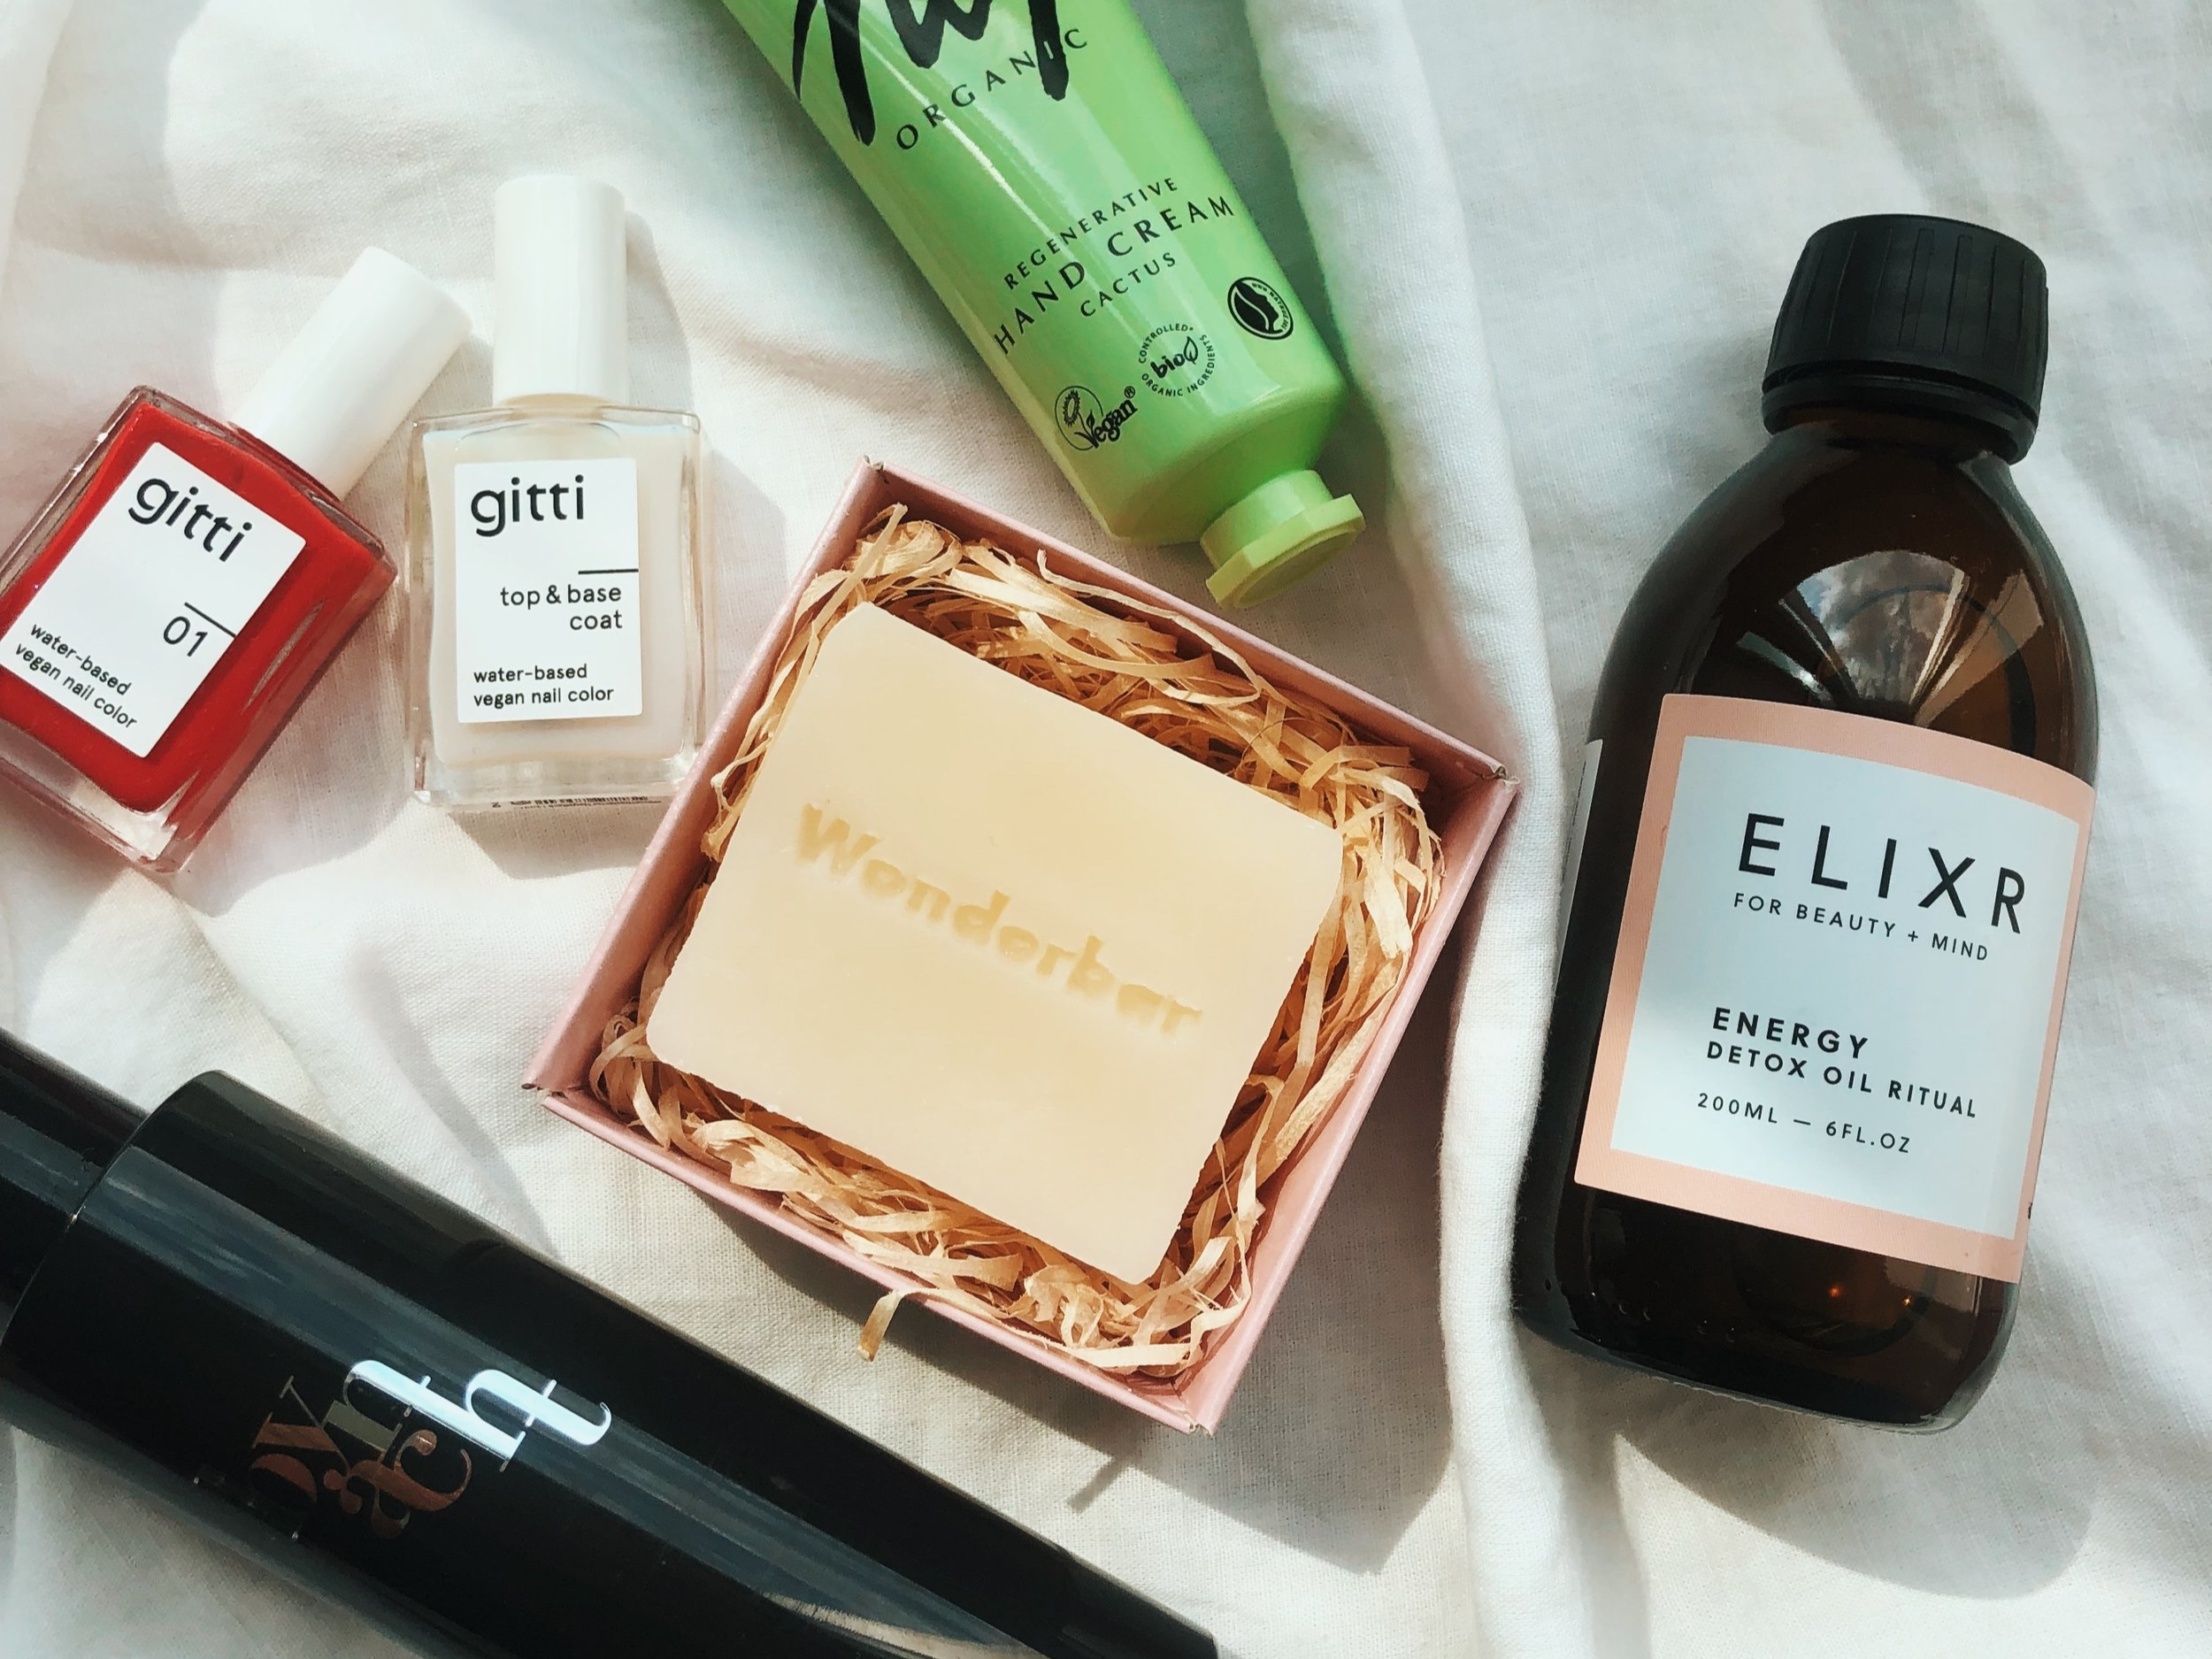 5 GERMAN BEAUTY BRANDS YOU NEED TO KNOW - CLEAN, GOOD, TRIED AND TESTED.